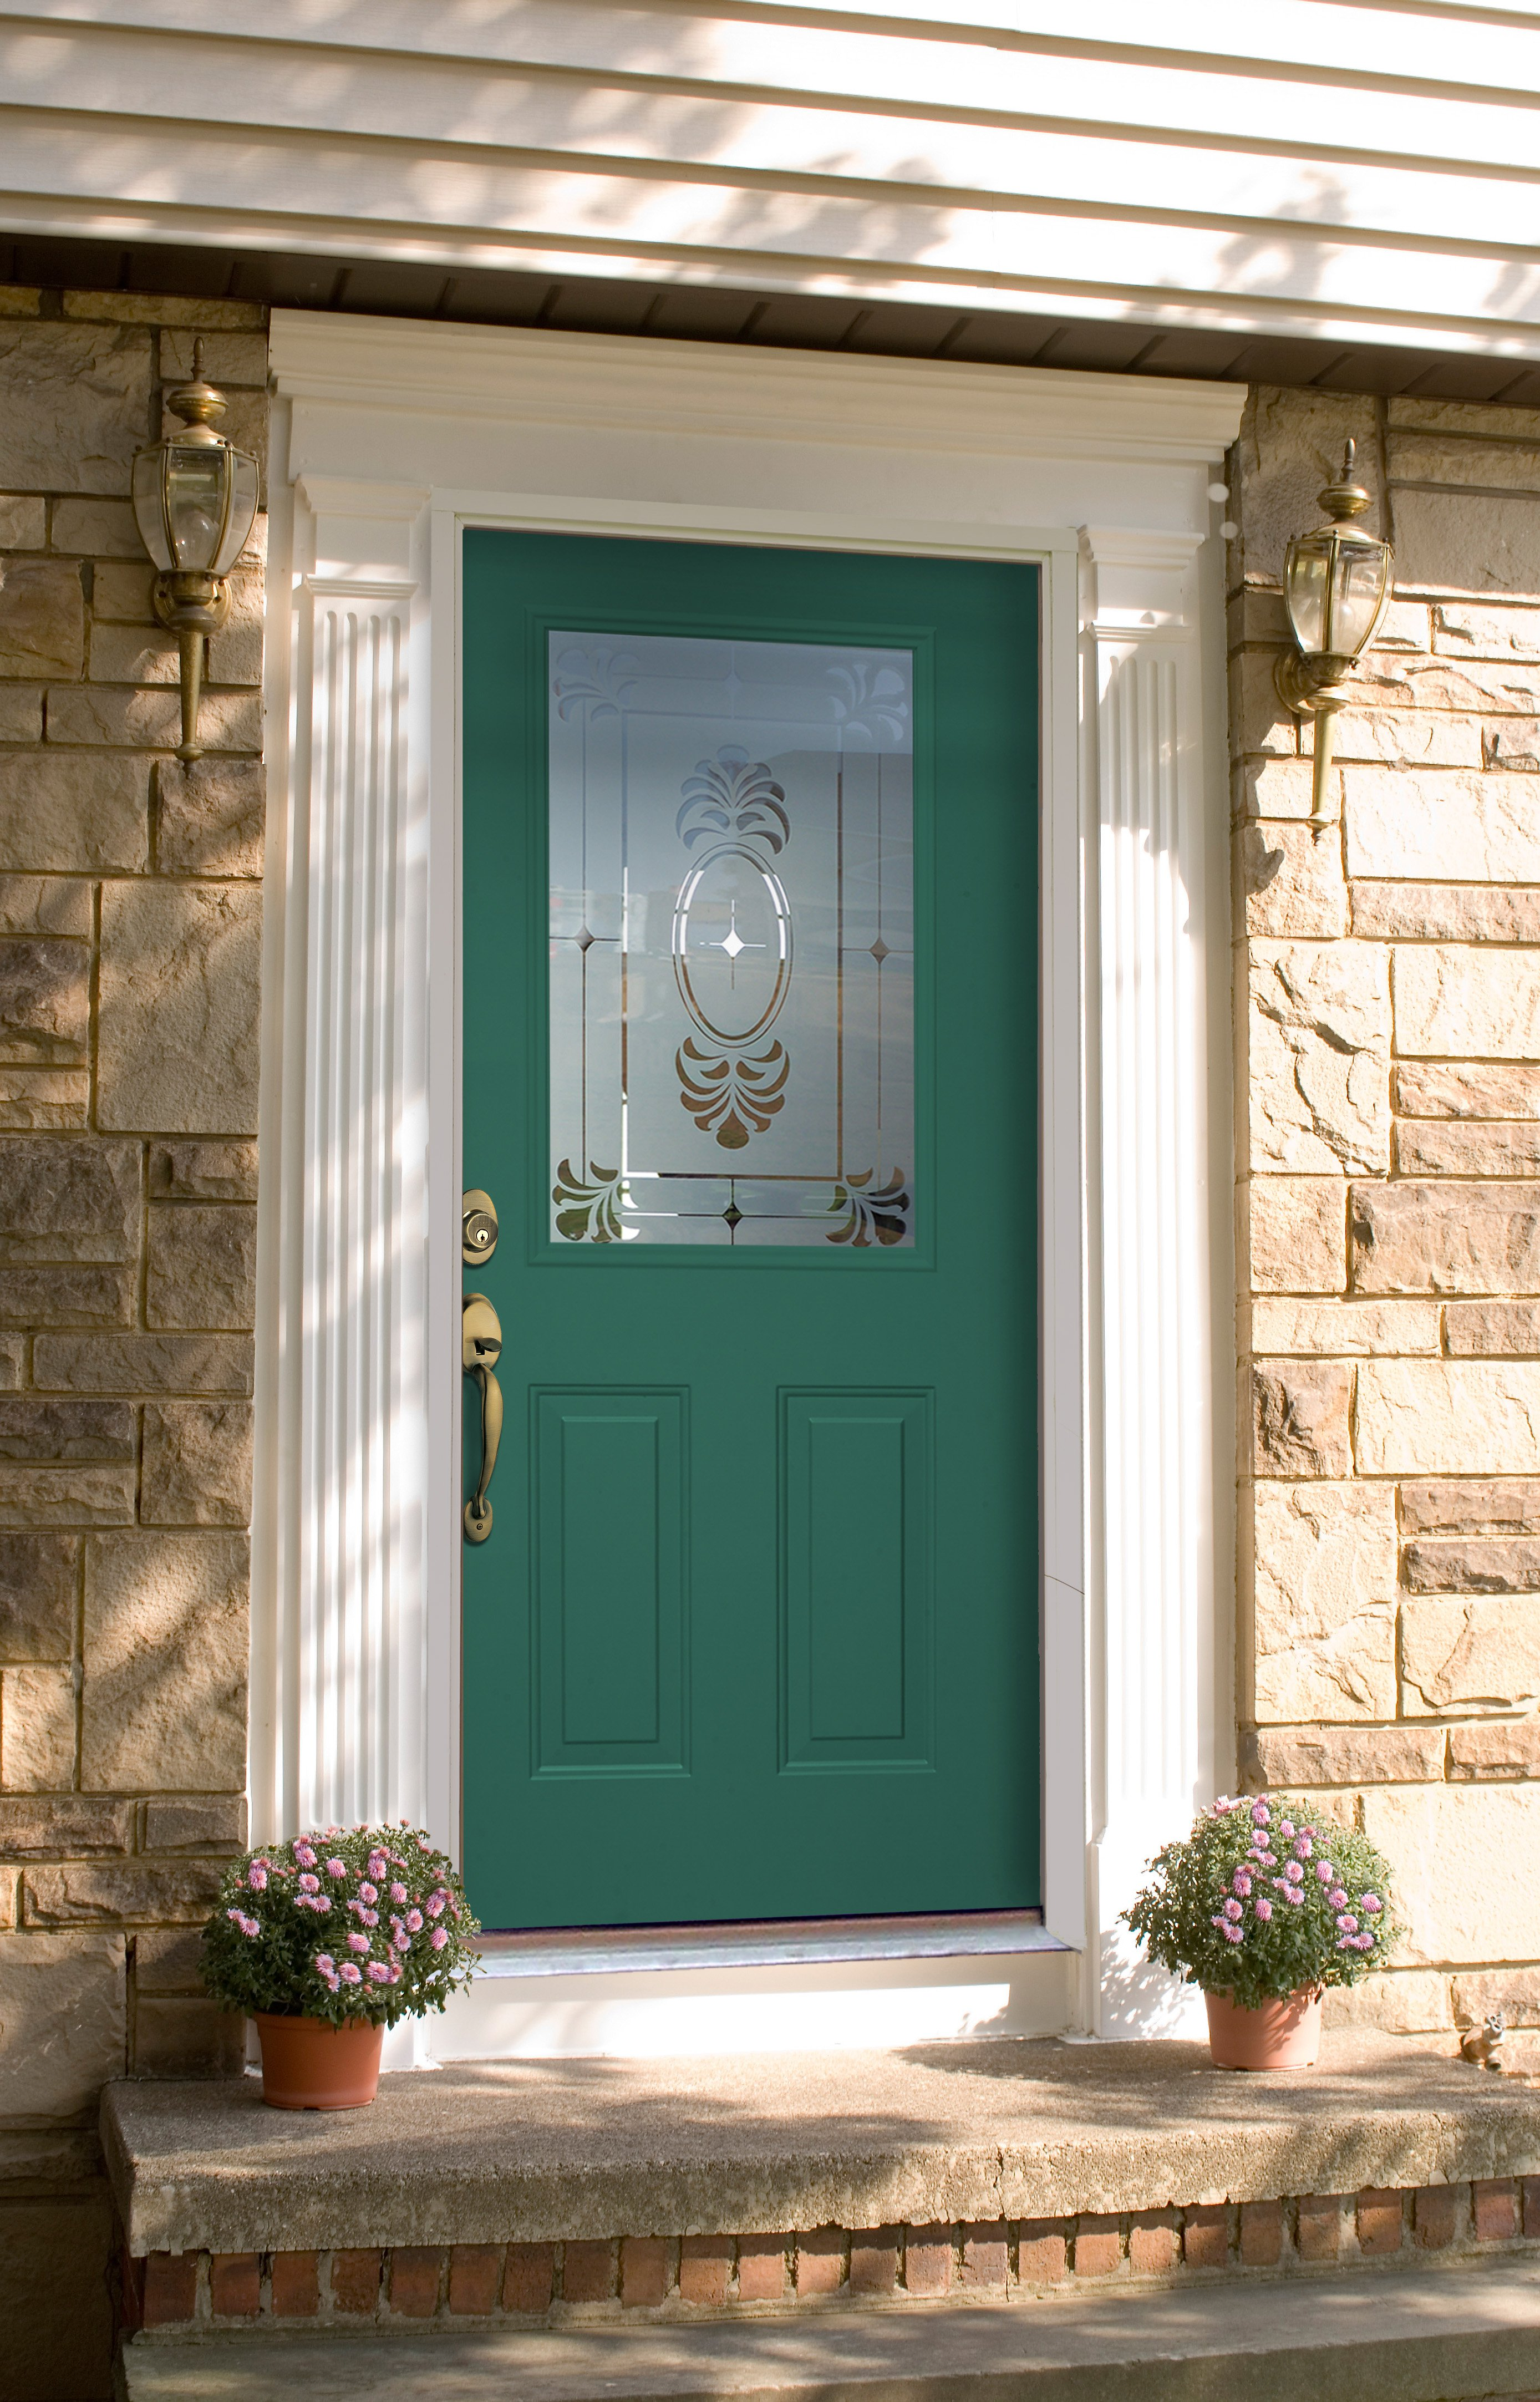 Before Purchasing Storm Doors Pittsburgh For Your Home On A Whim, It Is  Important To Know What A Storm Door Is, And How The Right Option Can  Benefit Your ...